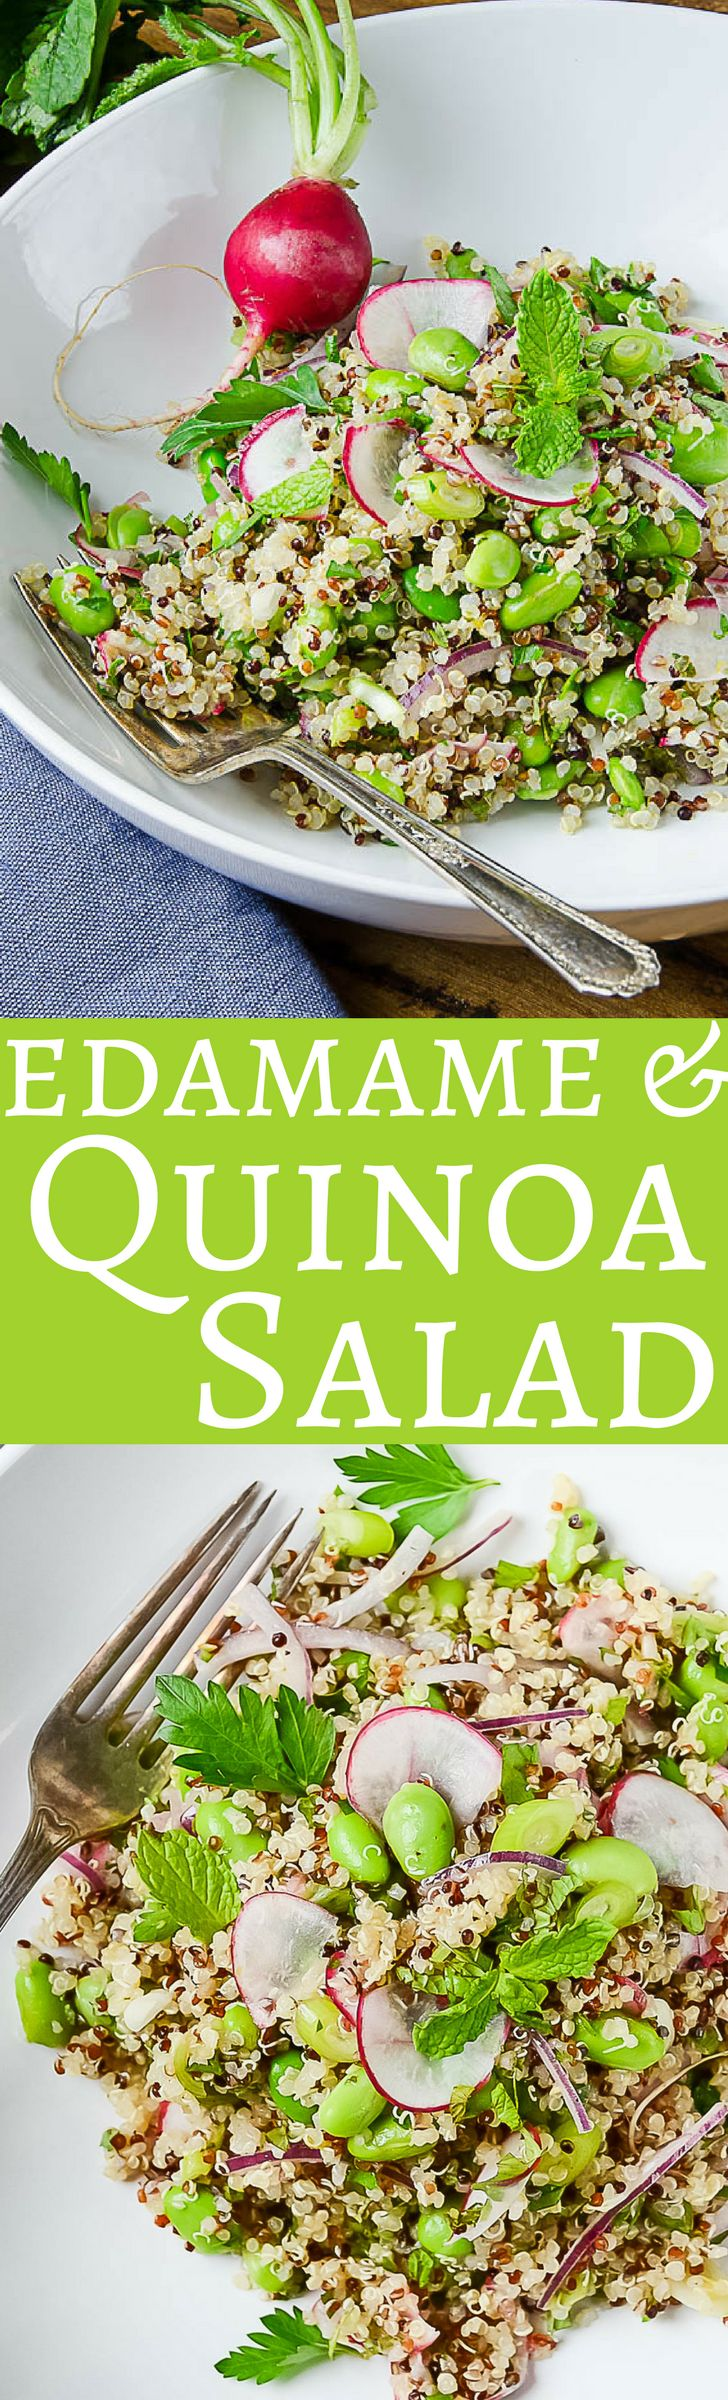 Here's an easy, healthy quinoa salad recipe!  With edamame, radishes and fresh herbs, it's a great Spring or Summer side dish or vegan main!